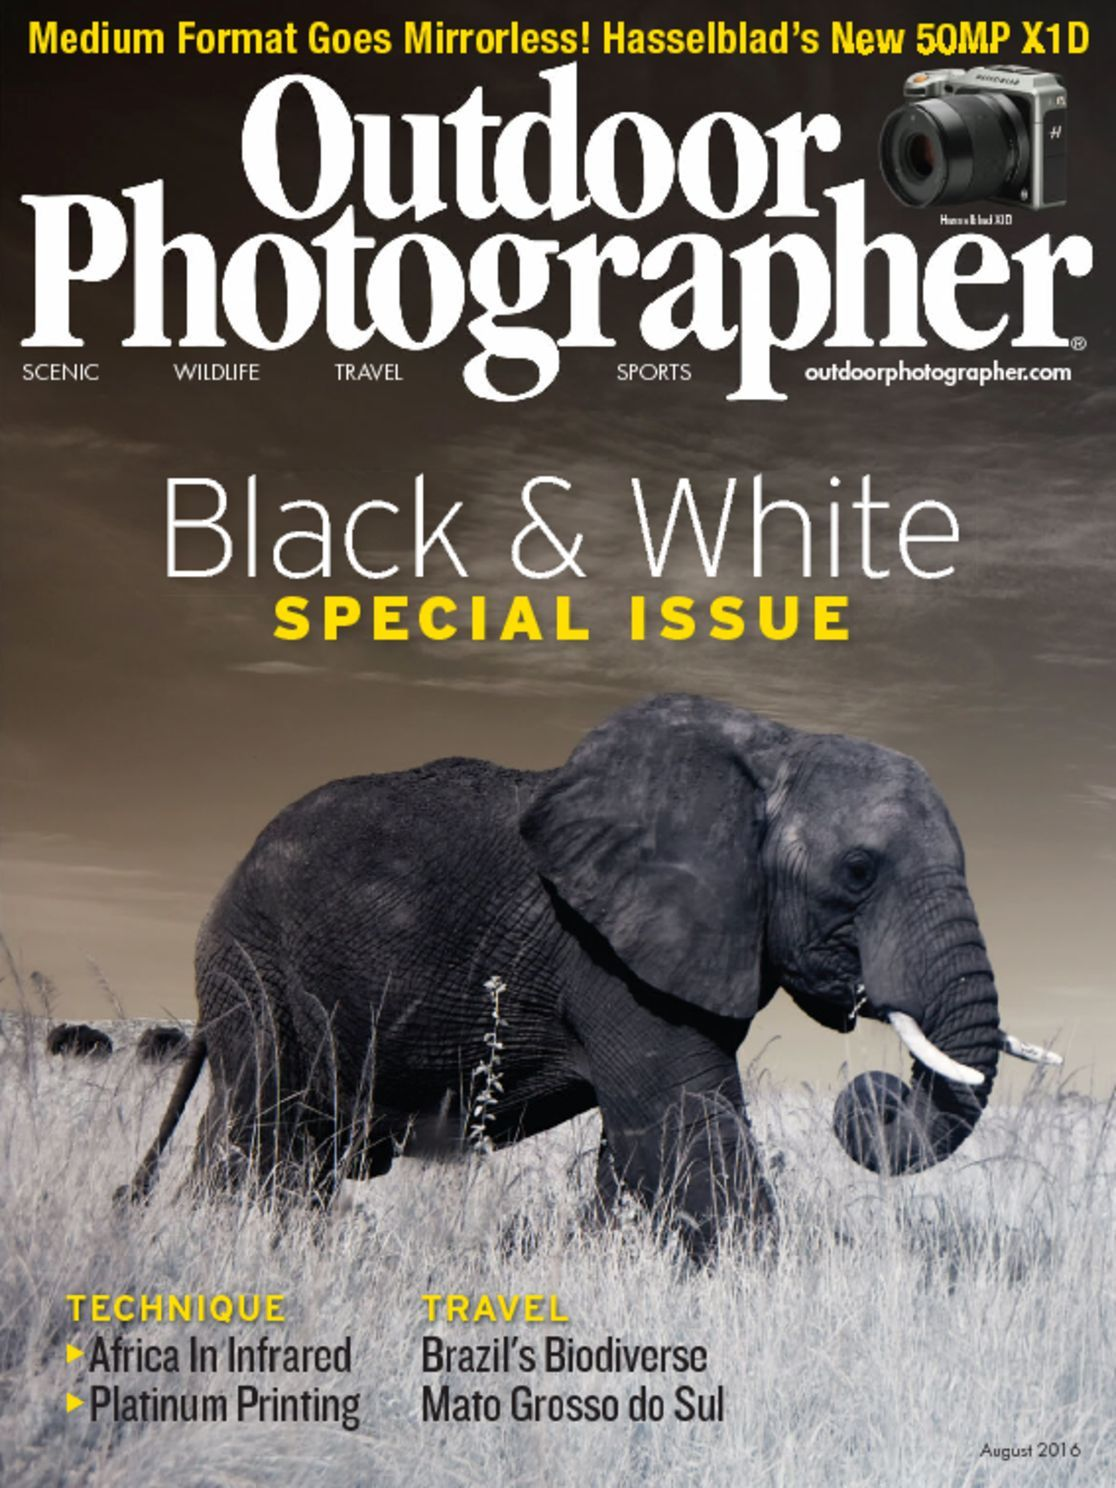 5096-outdoor-photographer-Cover-2016-August-1-Issue